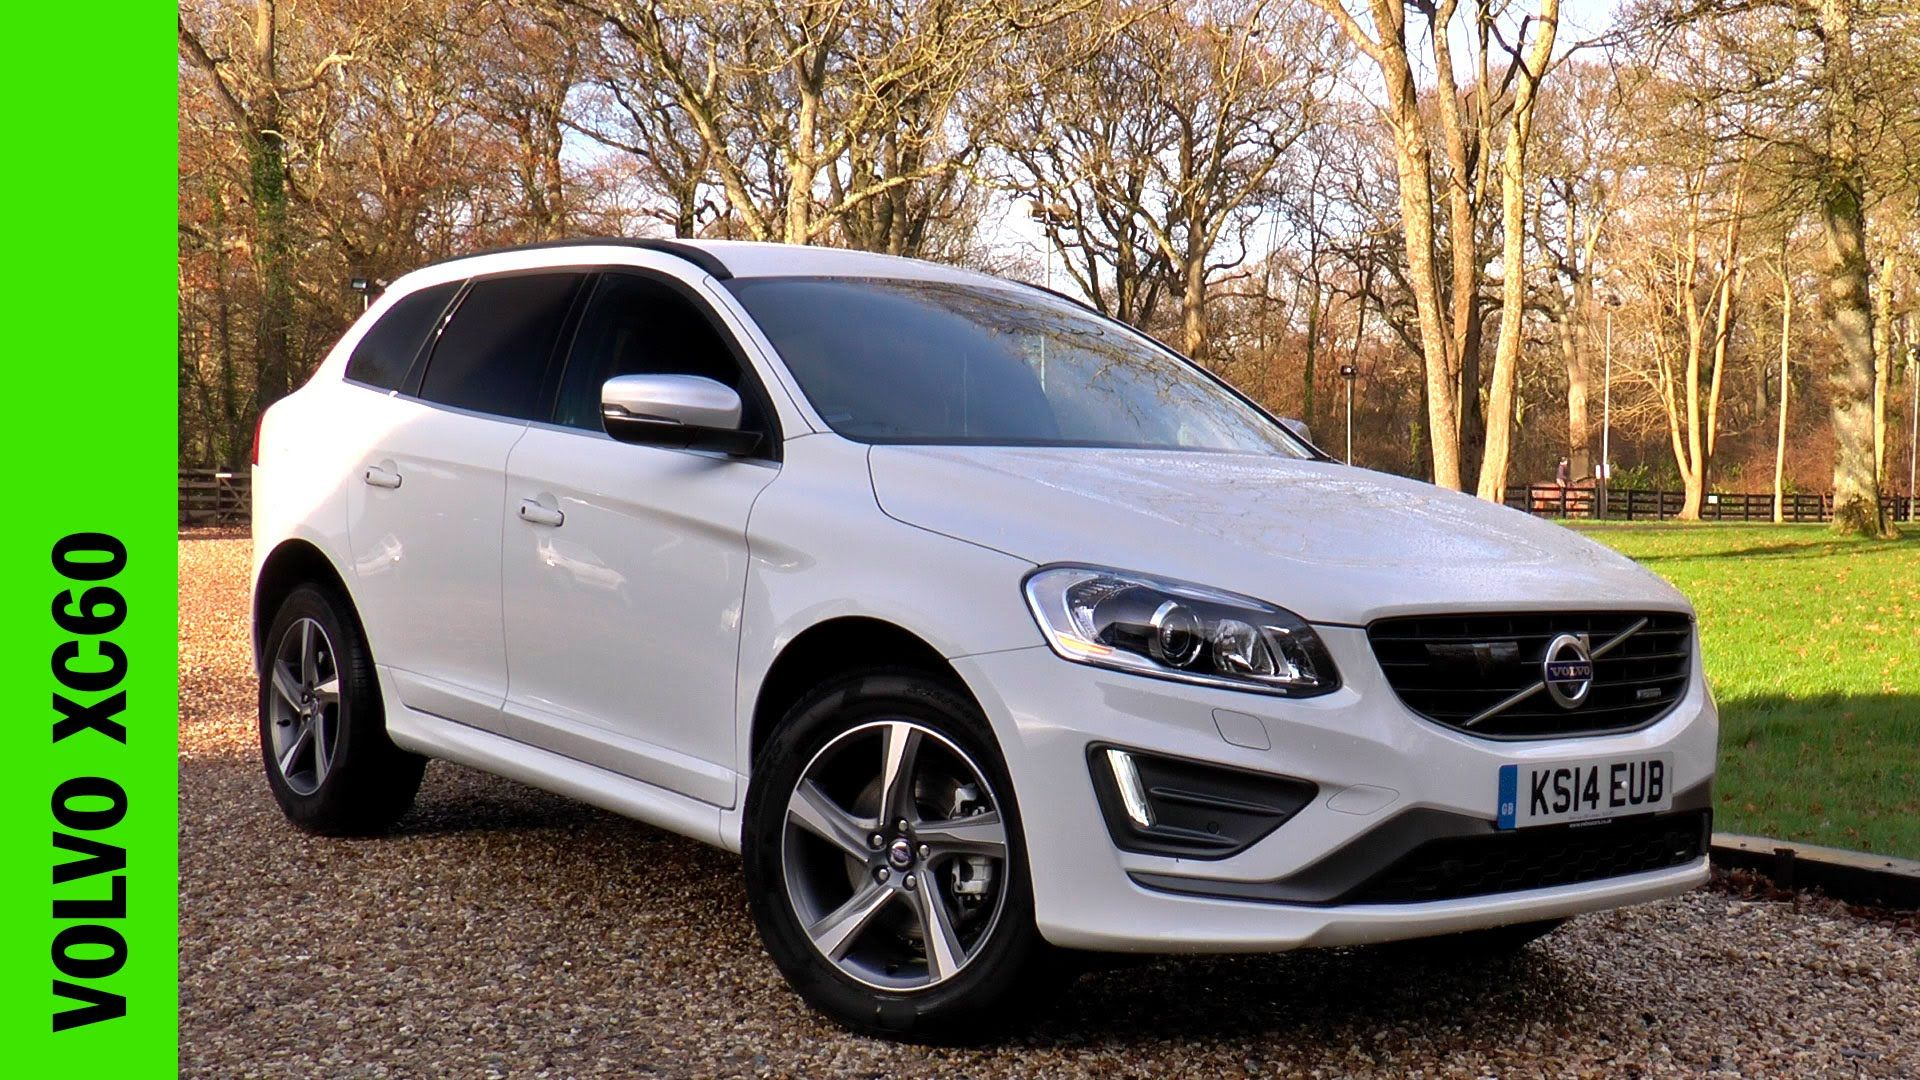 Safest suvs for small families volvo 2015